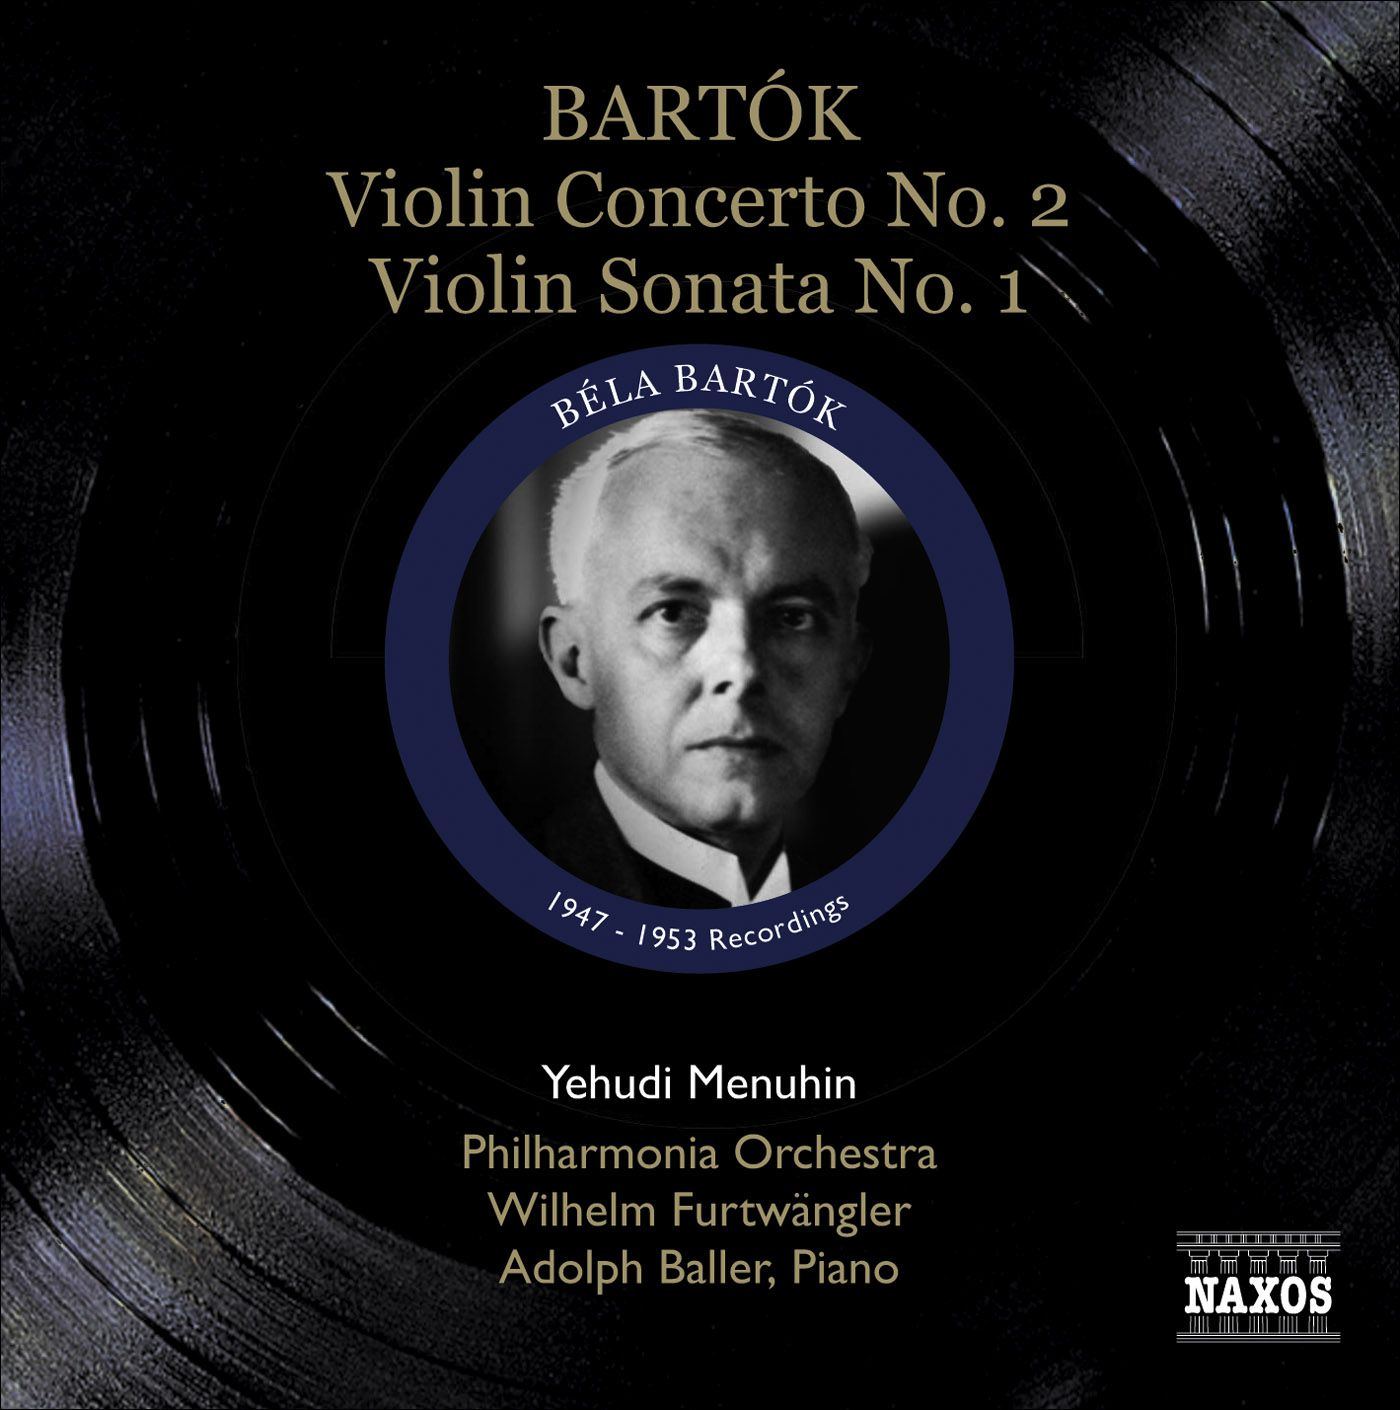 bartok violin concerto The 1985 live recording of bartók's ardent first violin concerto, a work inspired by the composer's infatuation for the young violinist steffi geyer, finds josef suk in outstanding form, squeezing the last ounce of emotional intensity out of the solo part.